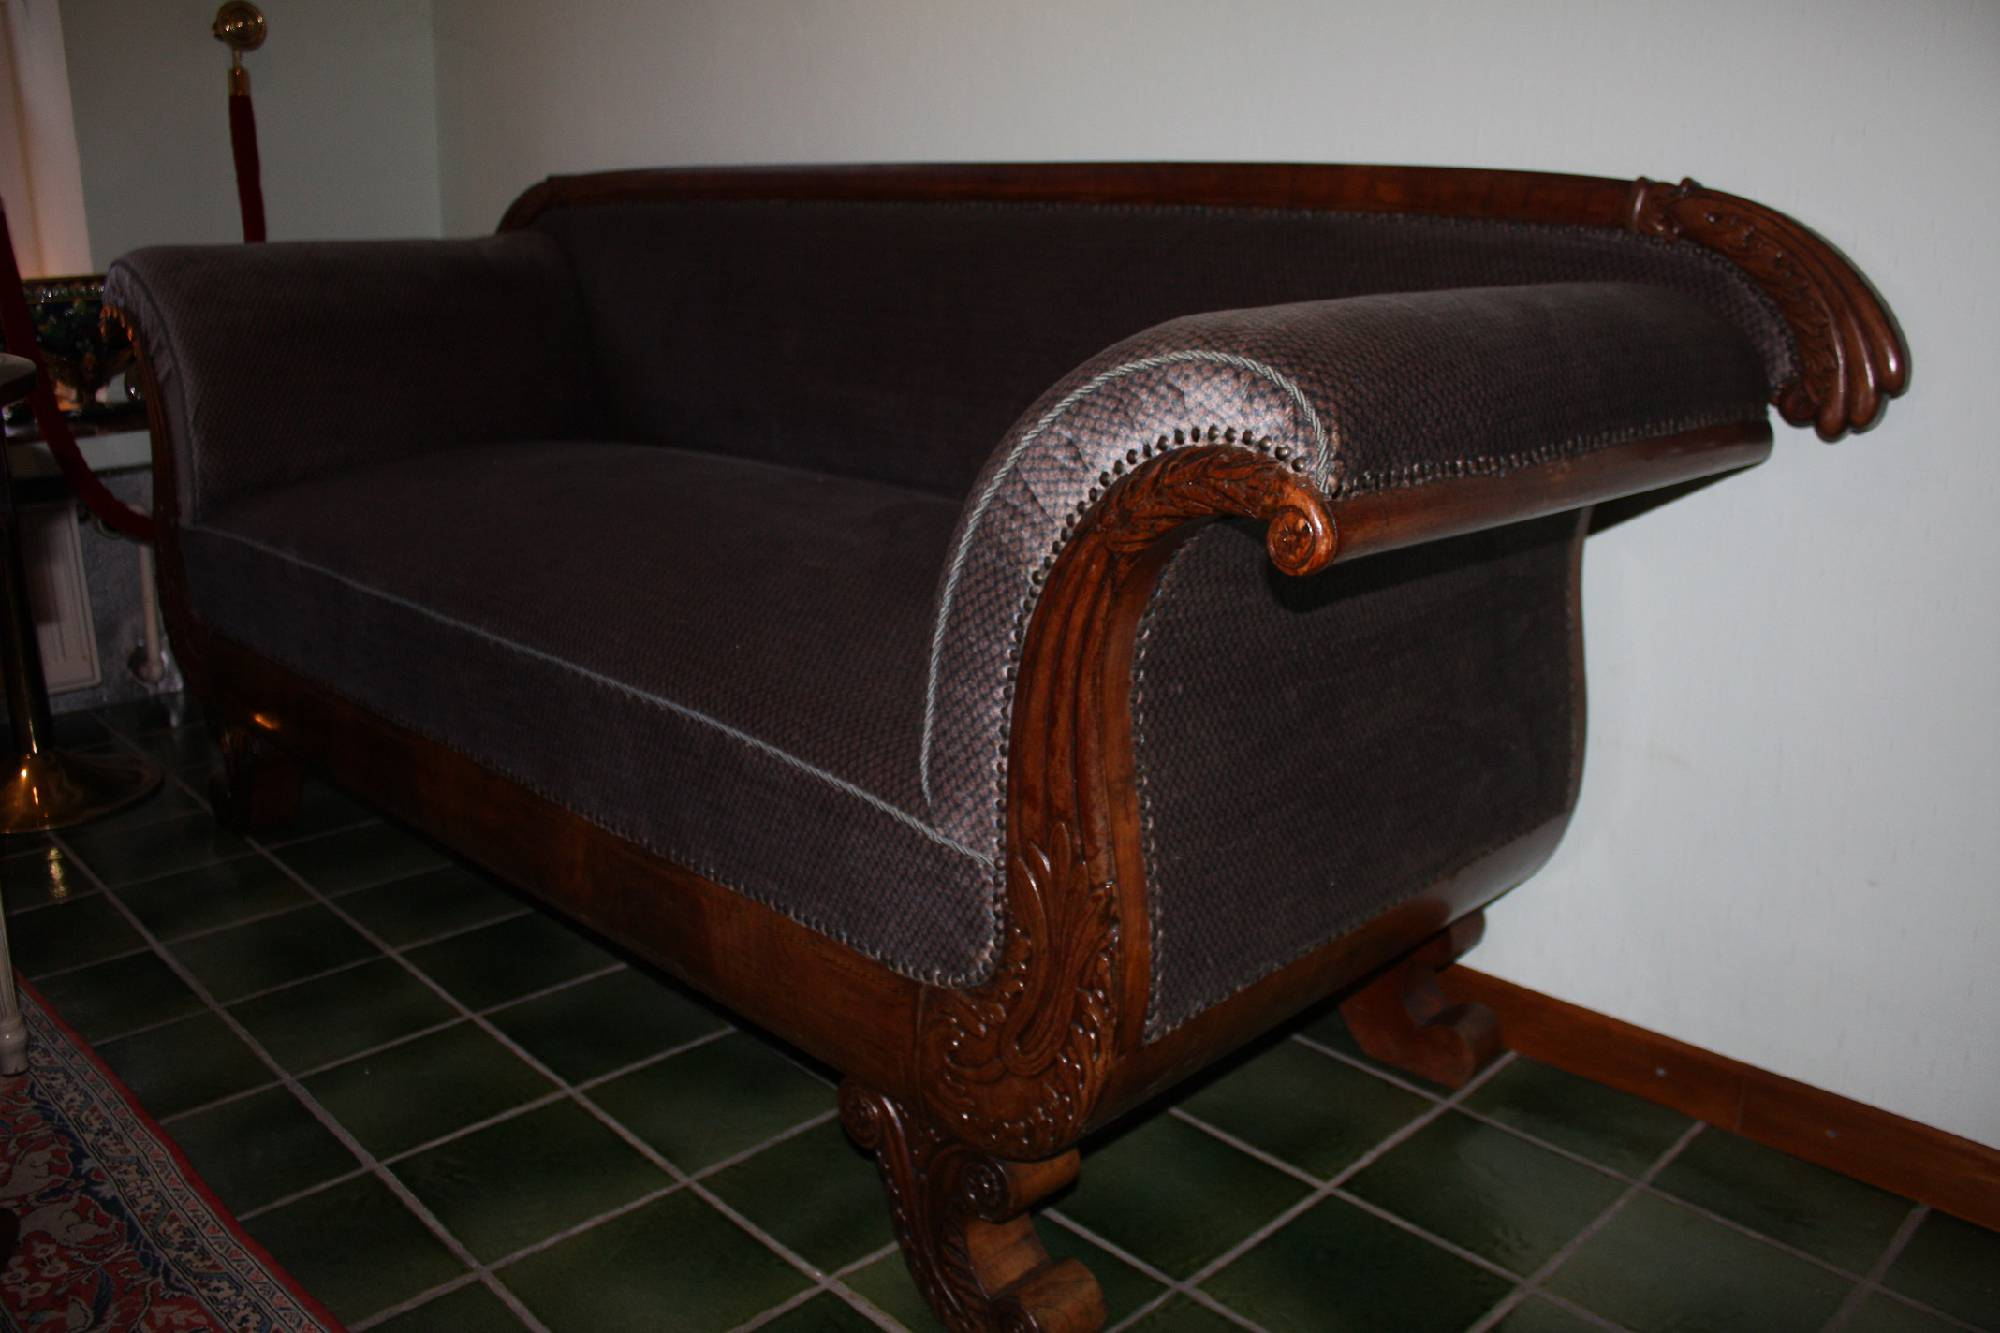 German mid-19th century Biedermeier Sofa